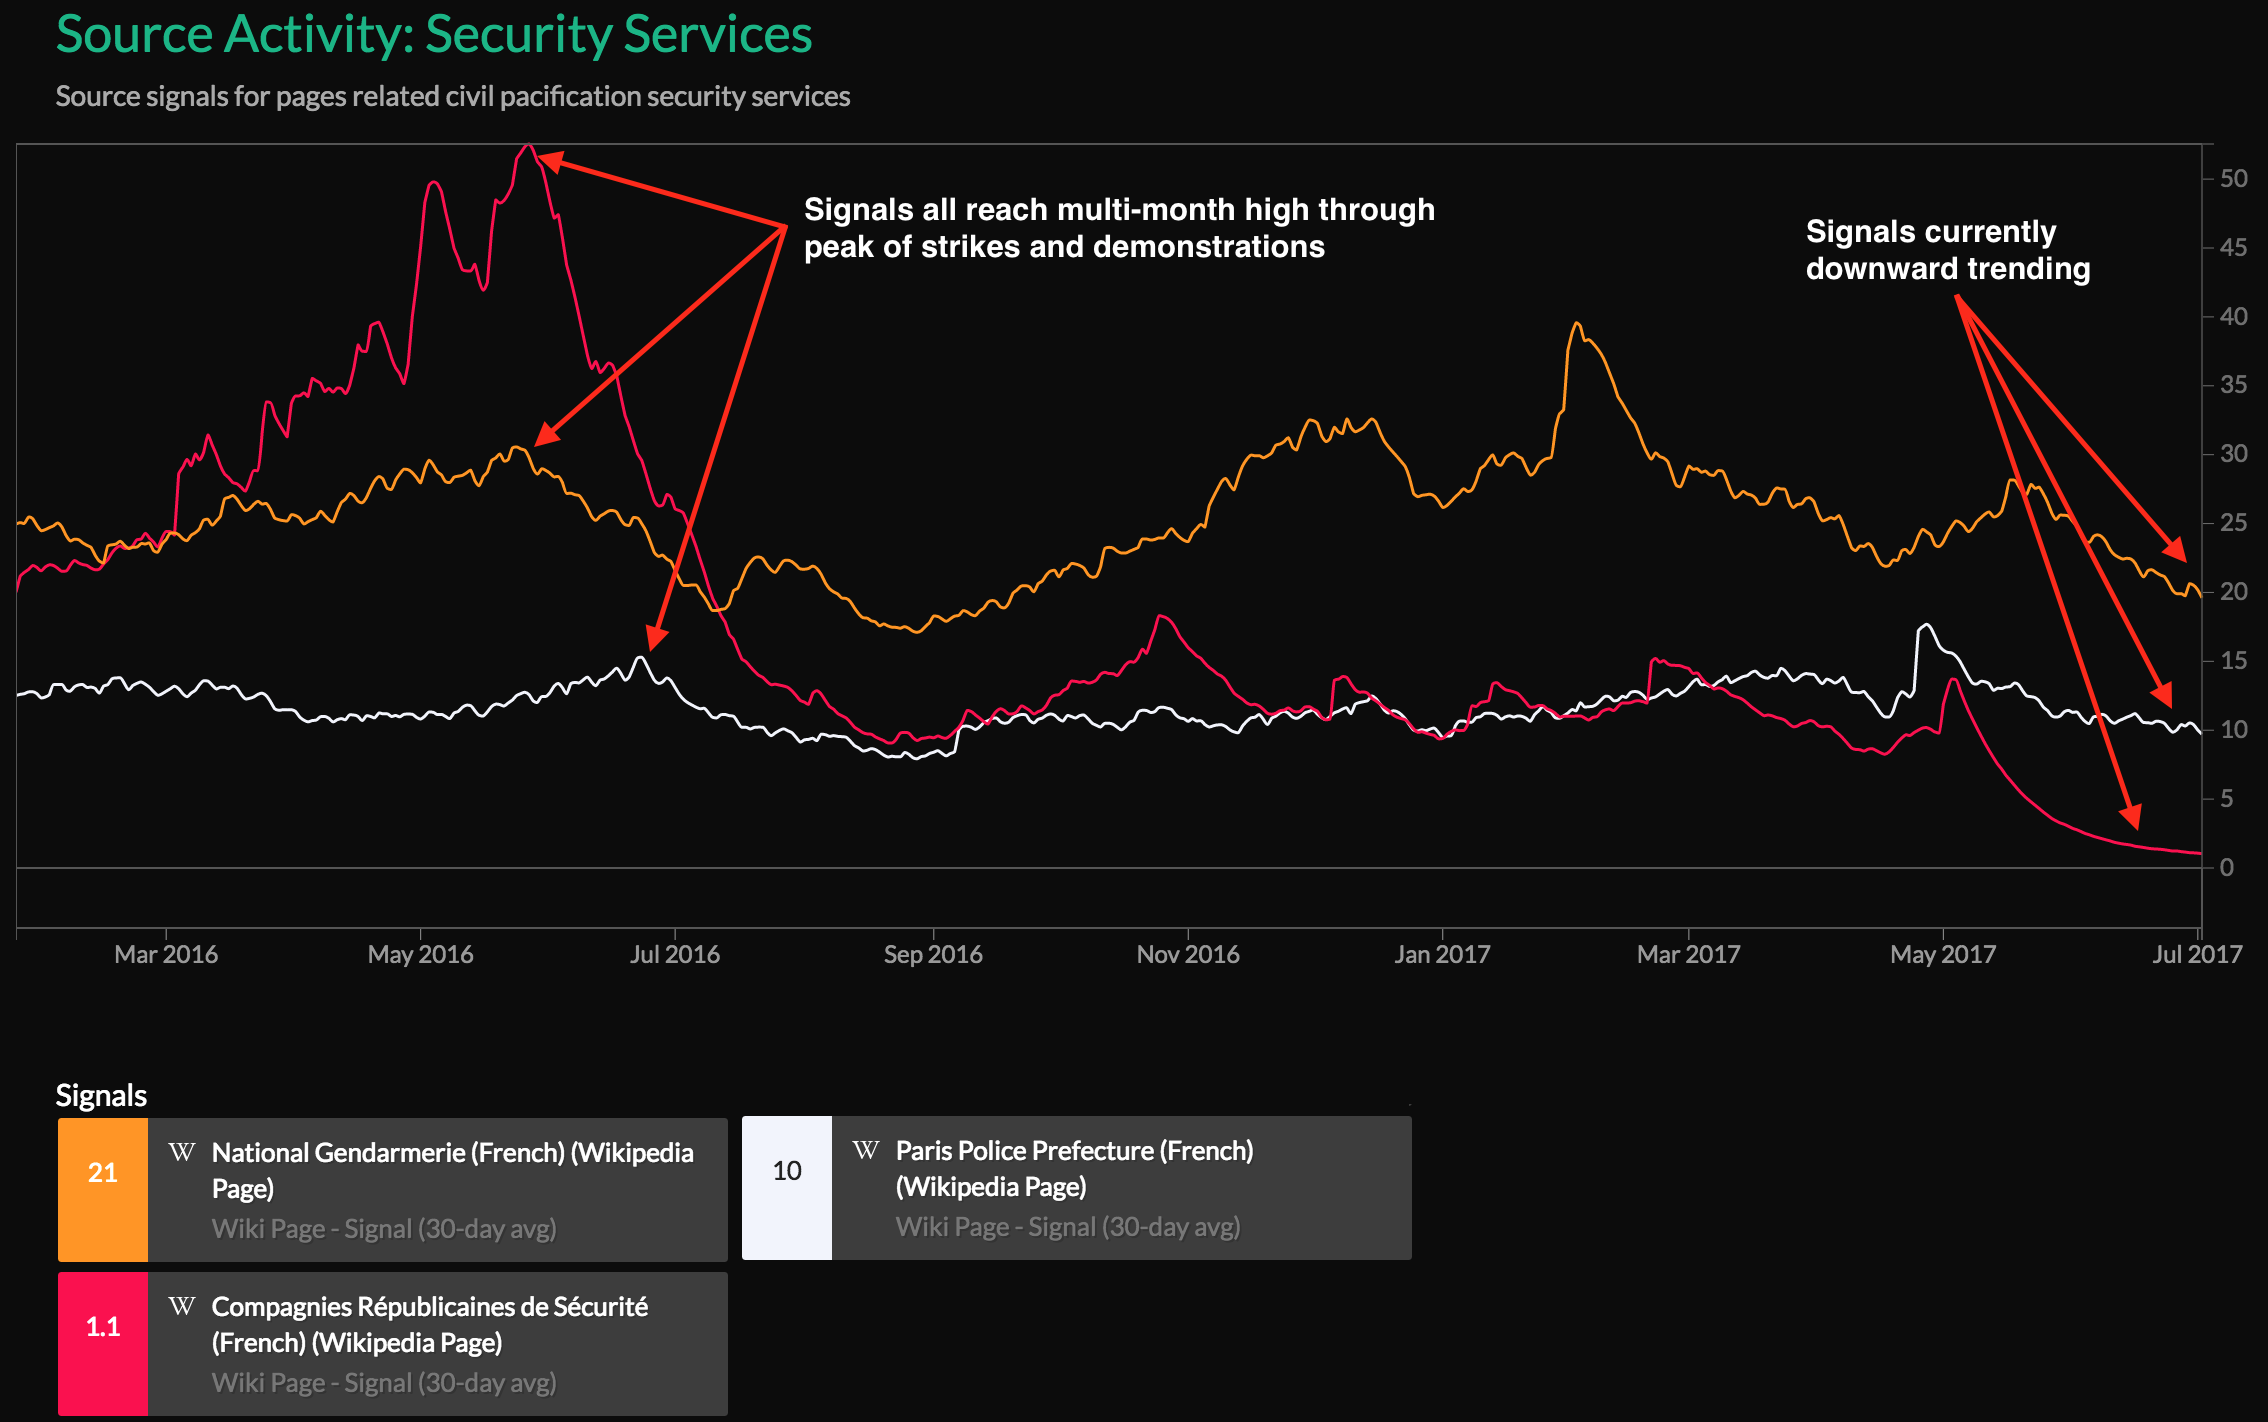 Security Services Source Activity